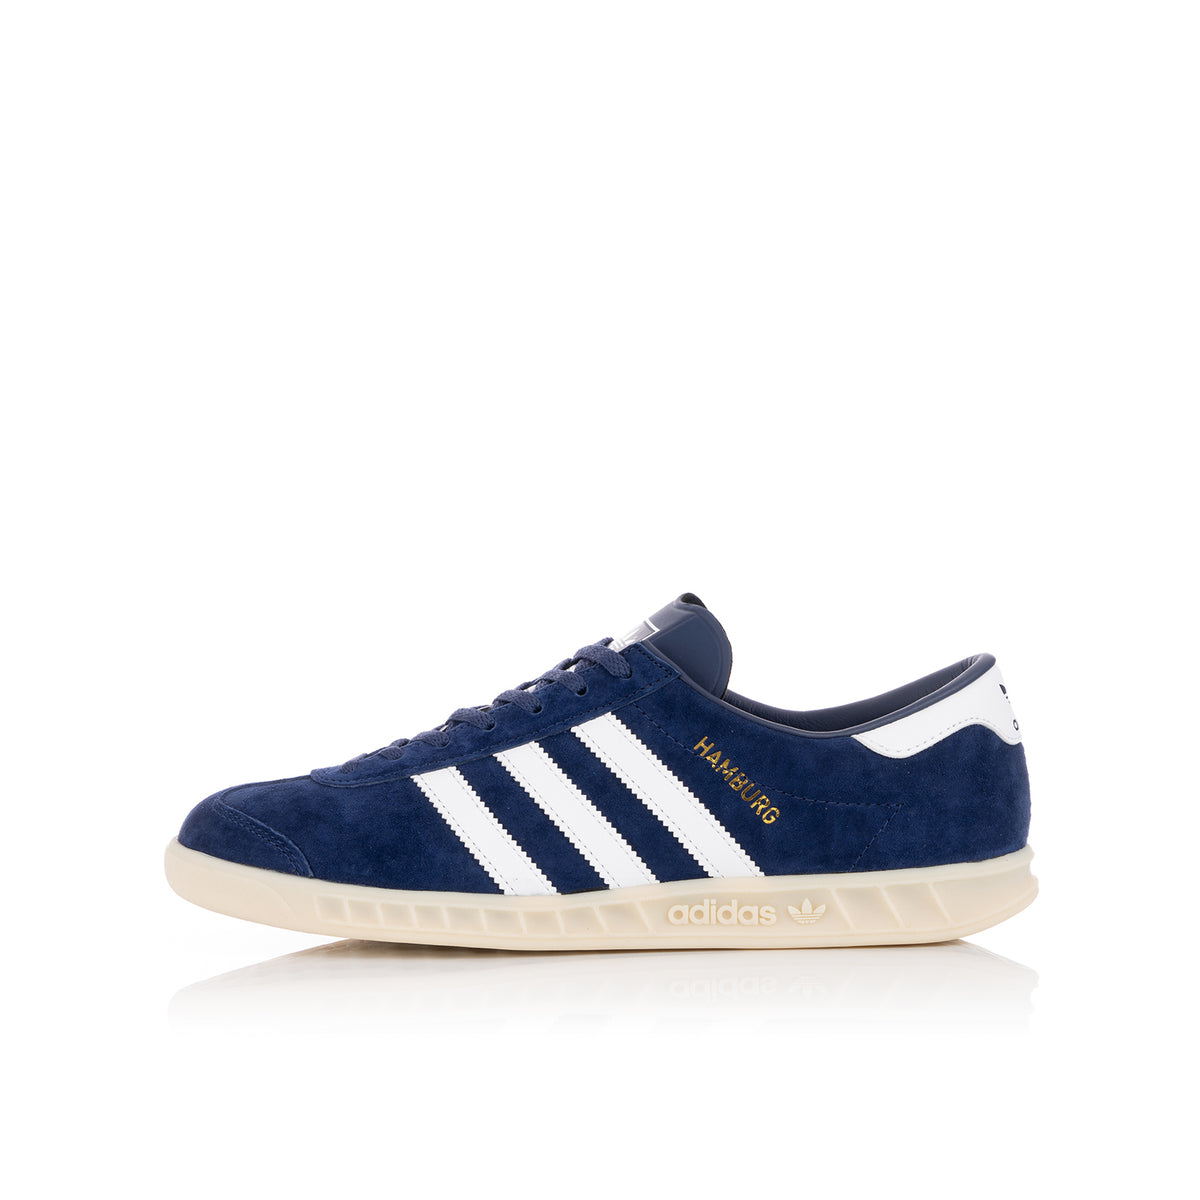 adidas Originals Hamburg Tech Indigo White